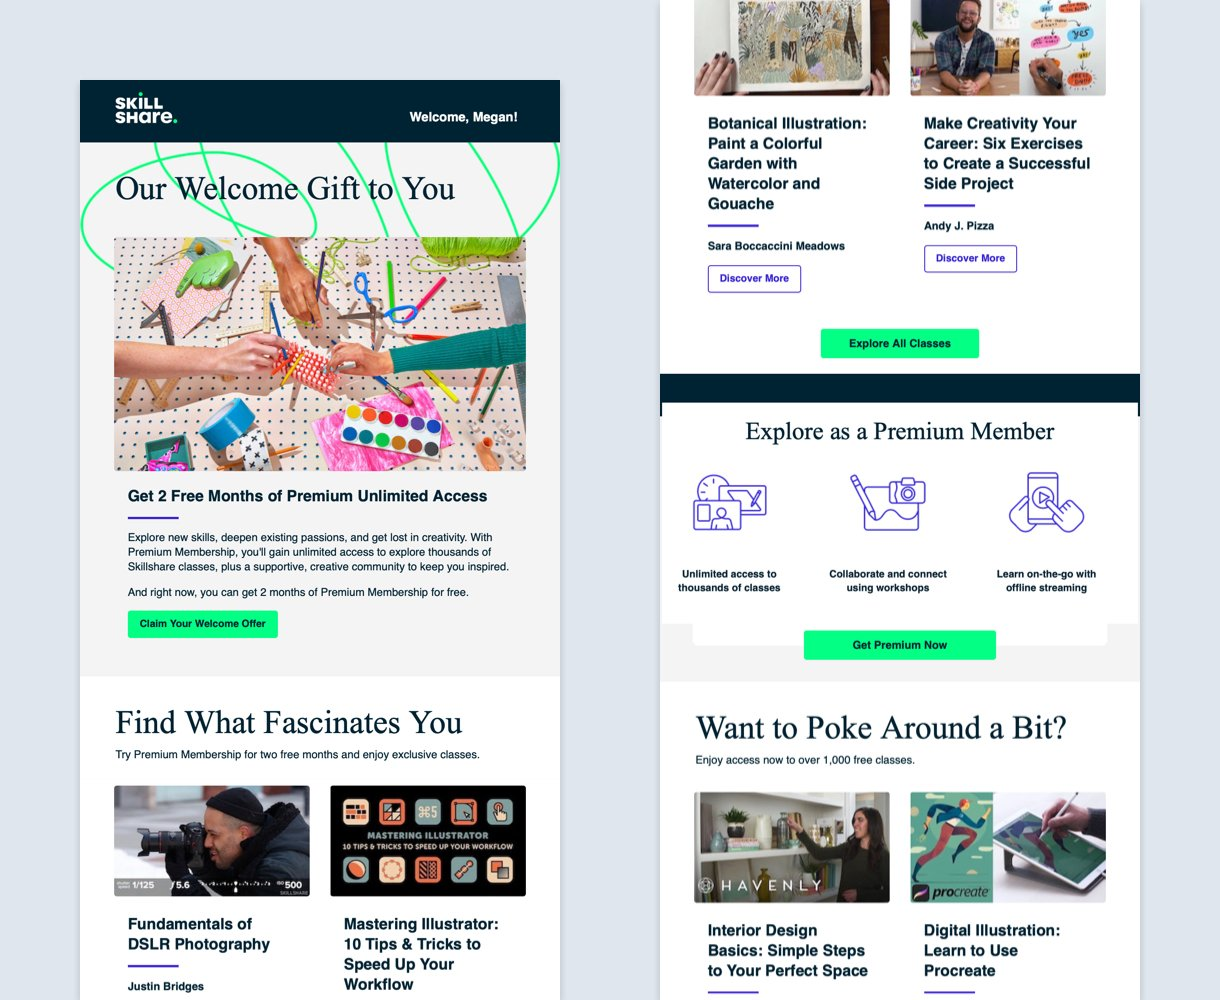 skillshare newsletter design example with green buttons and icons